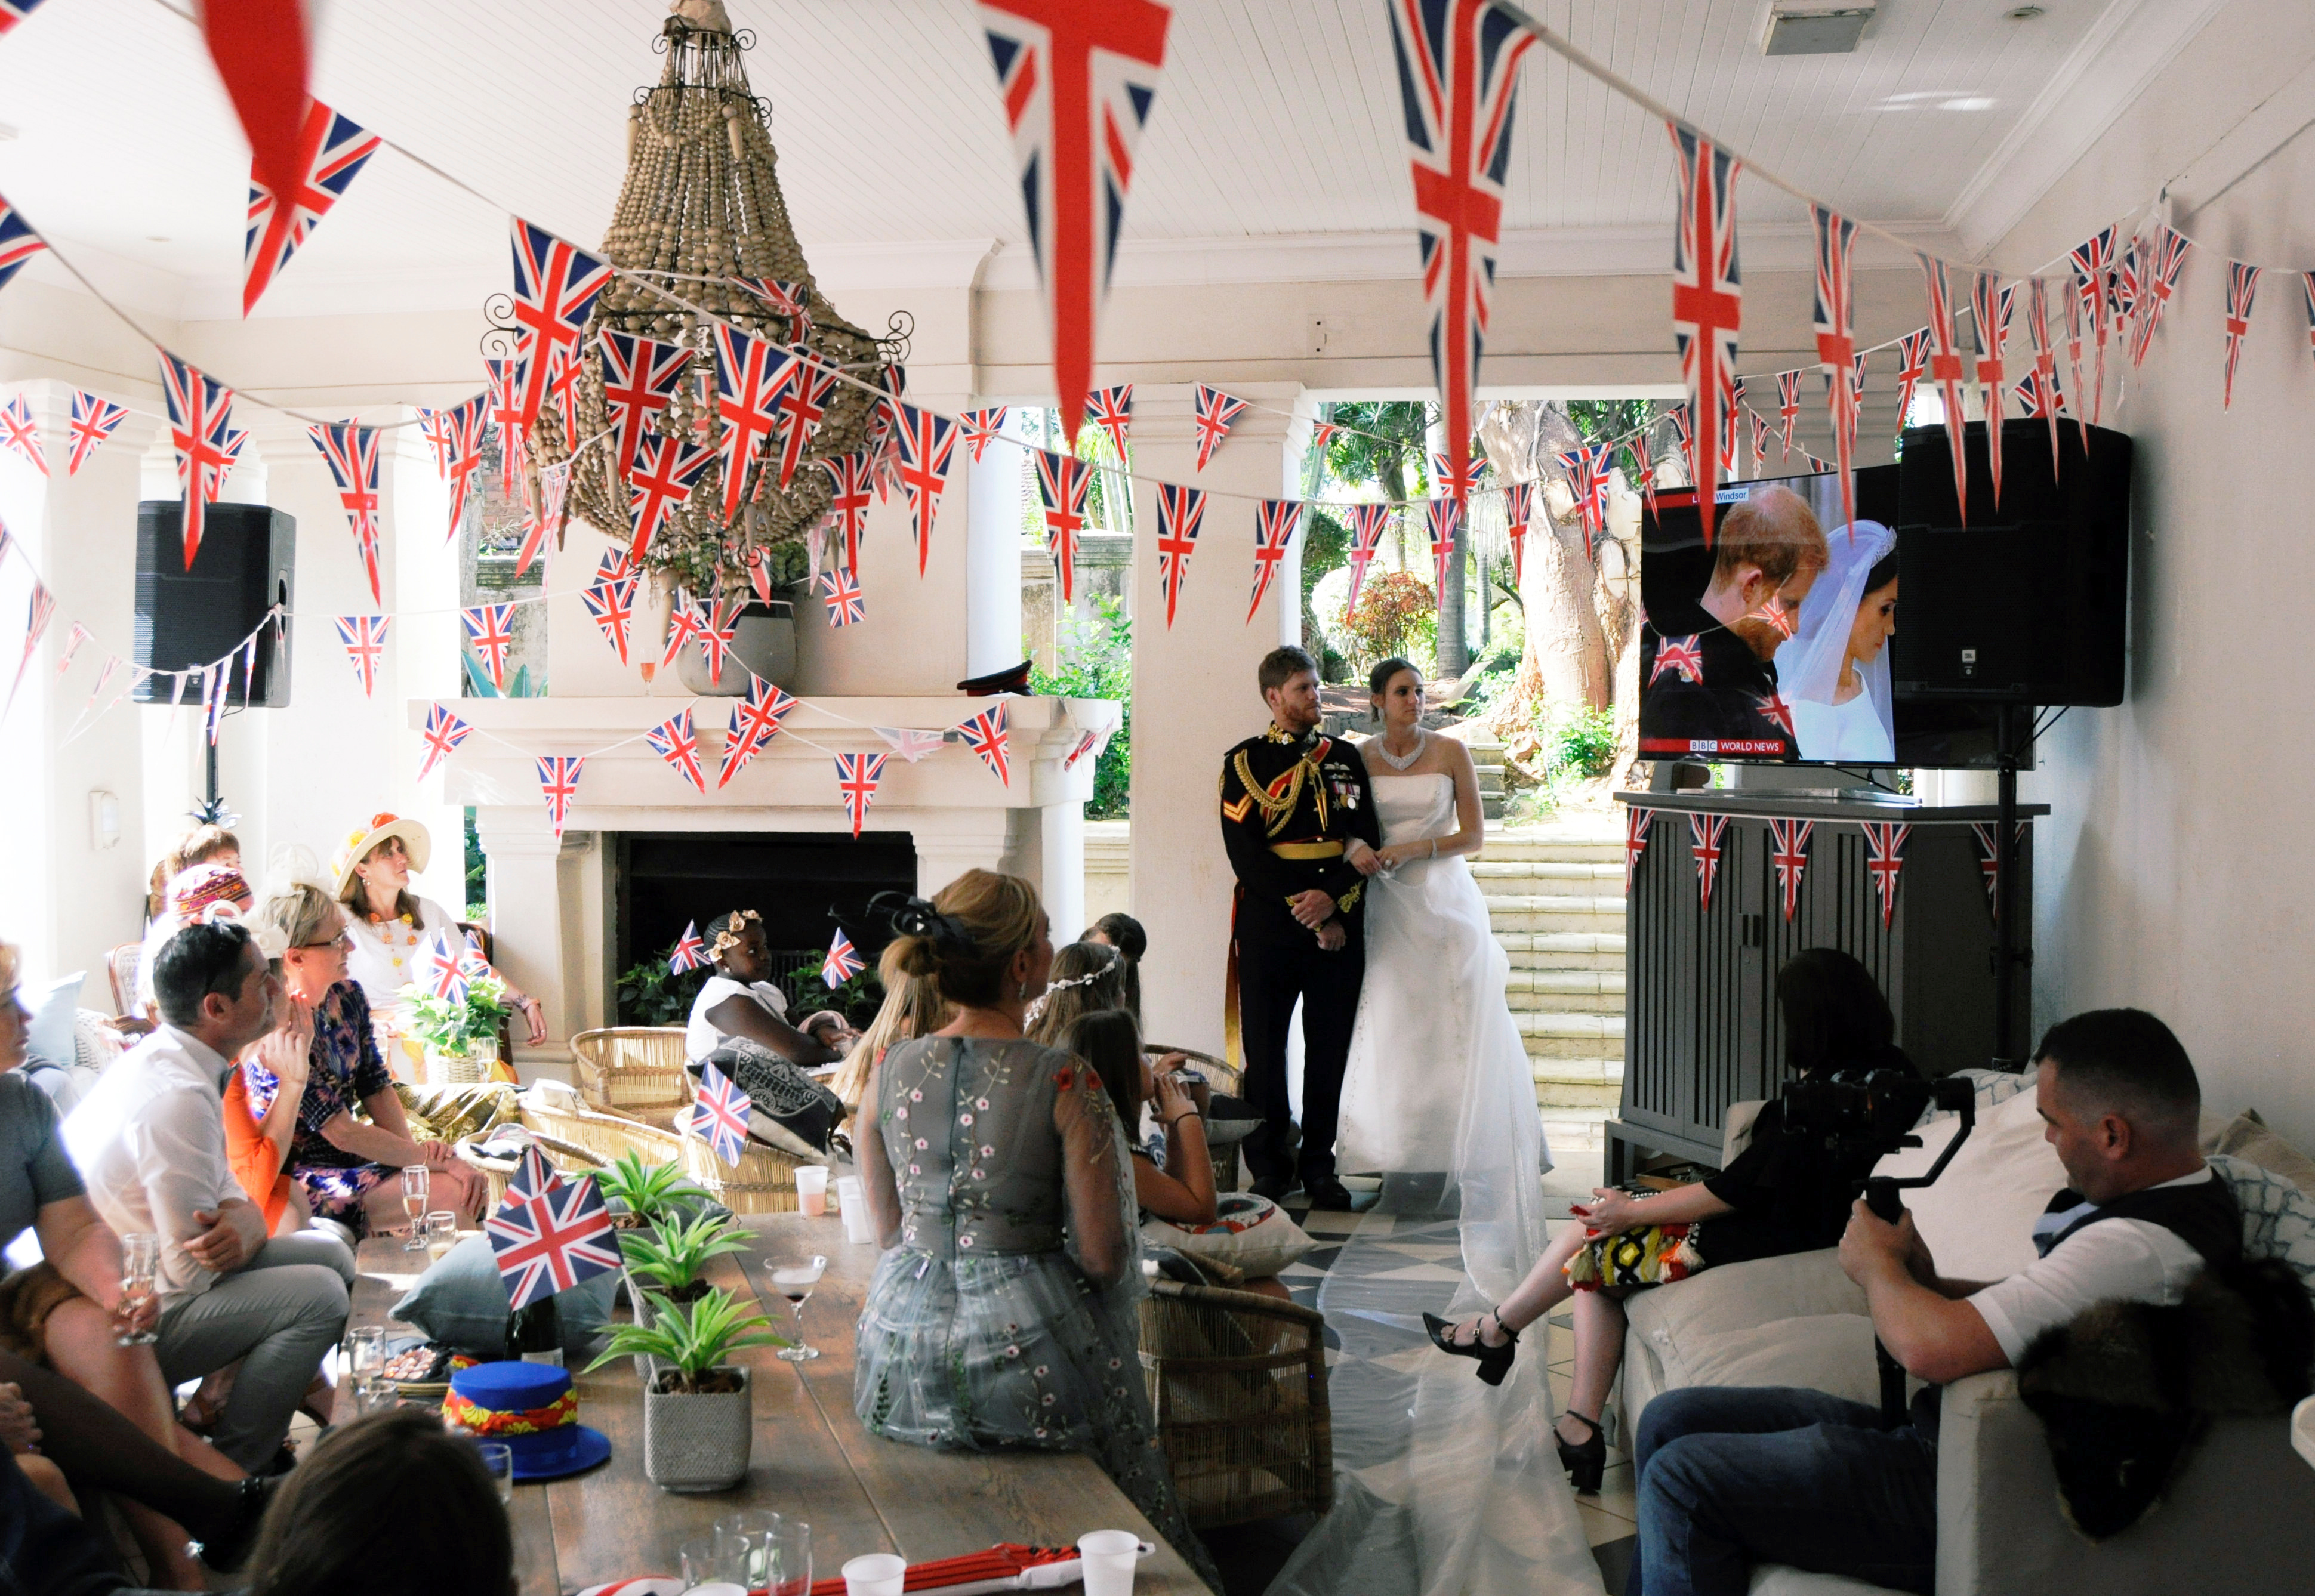 People watch Britain's Prince Harry and Meghan Markle during their wedding on television at a party in Durban, South Africa, May 19, 2018.